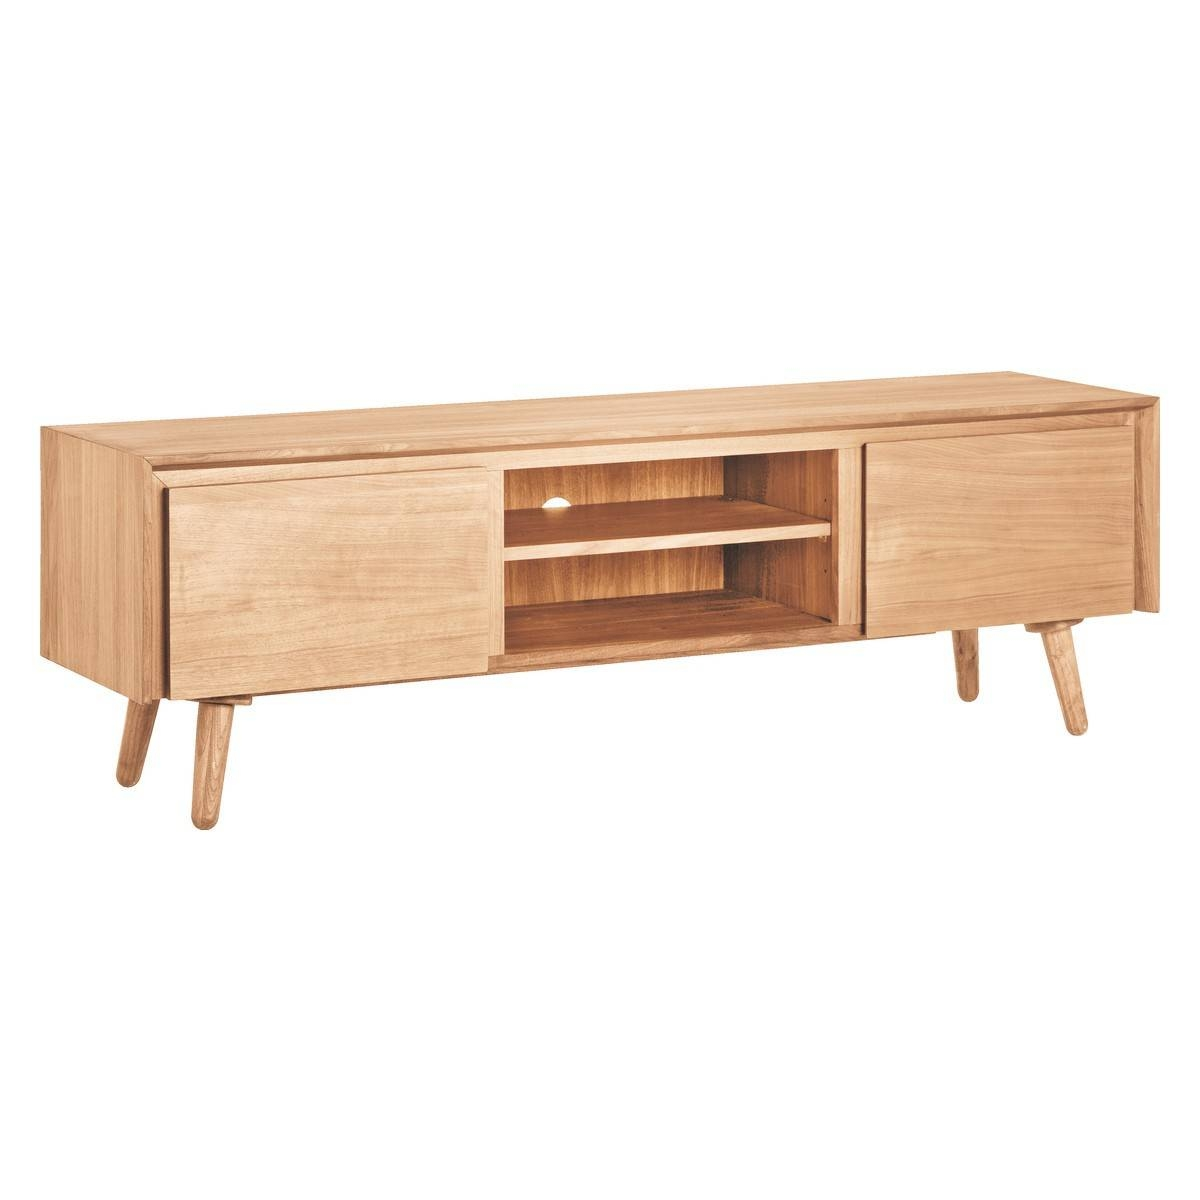 Inspiration about Vince Oak Large Av Unit | Buy Now At Habitat Uk In Habitat Sideboards (#2 of 15)